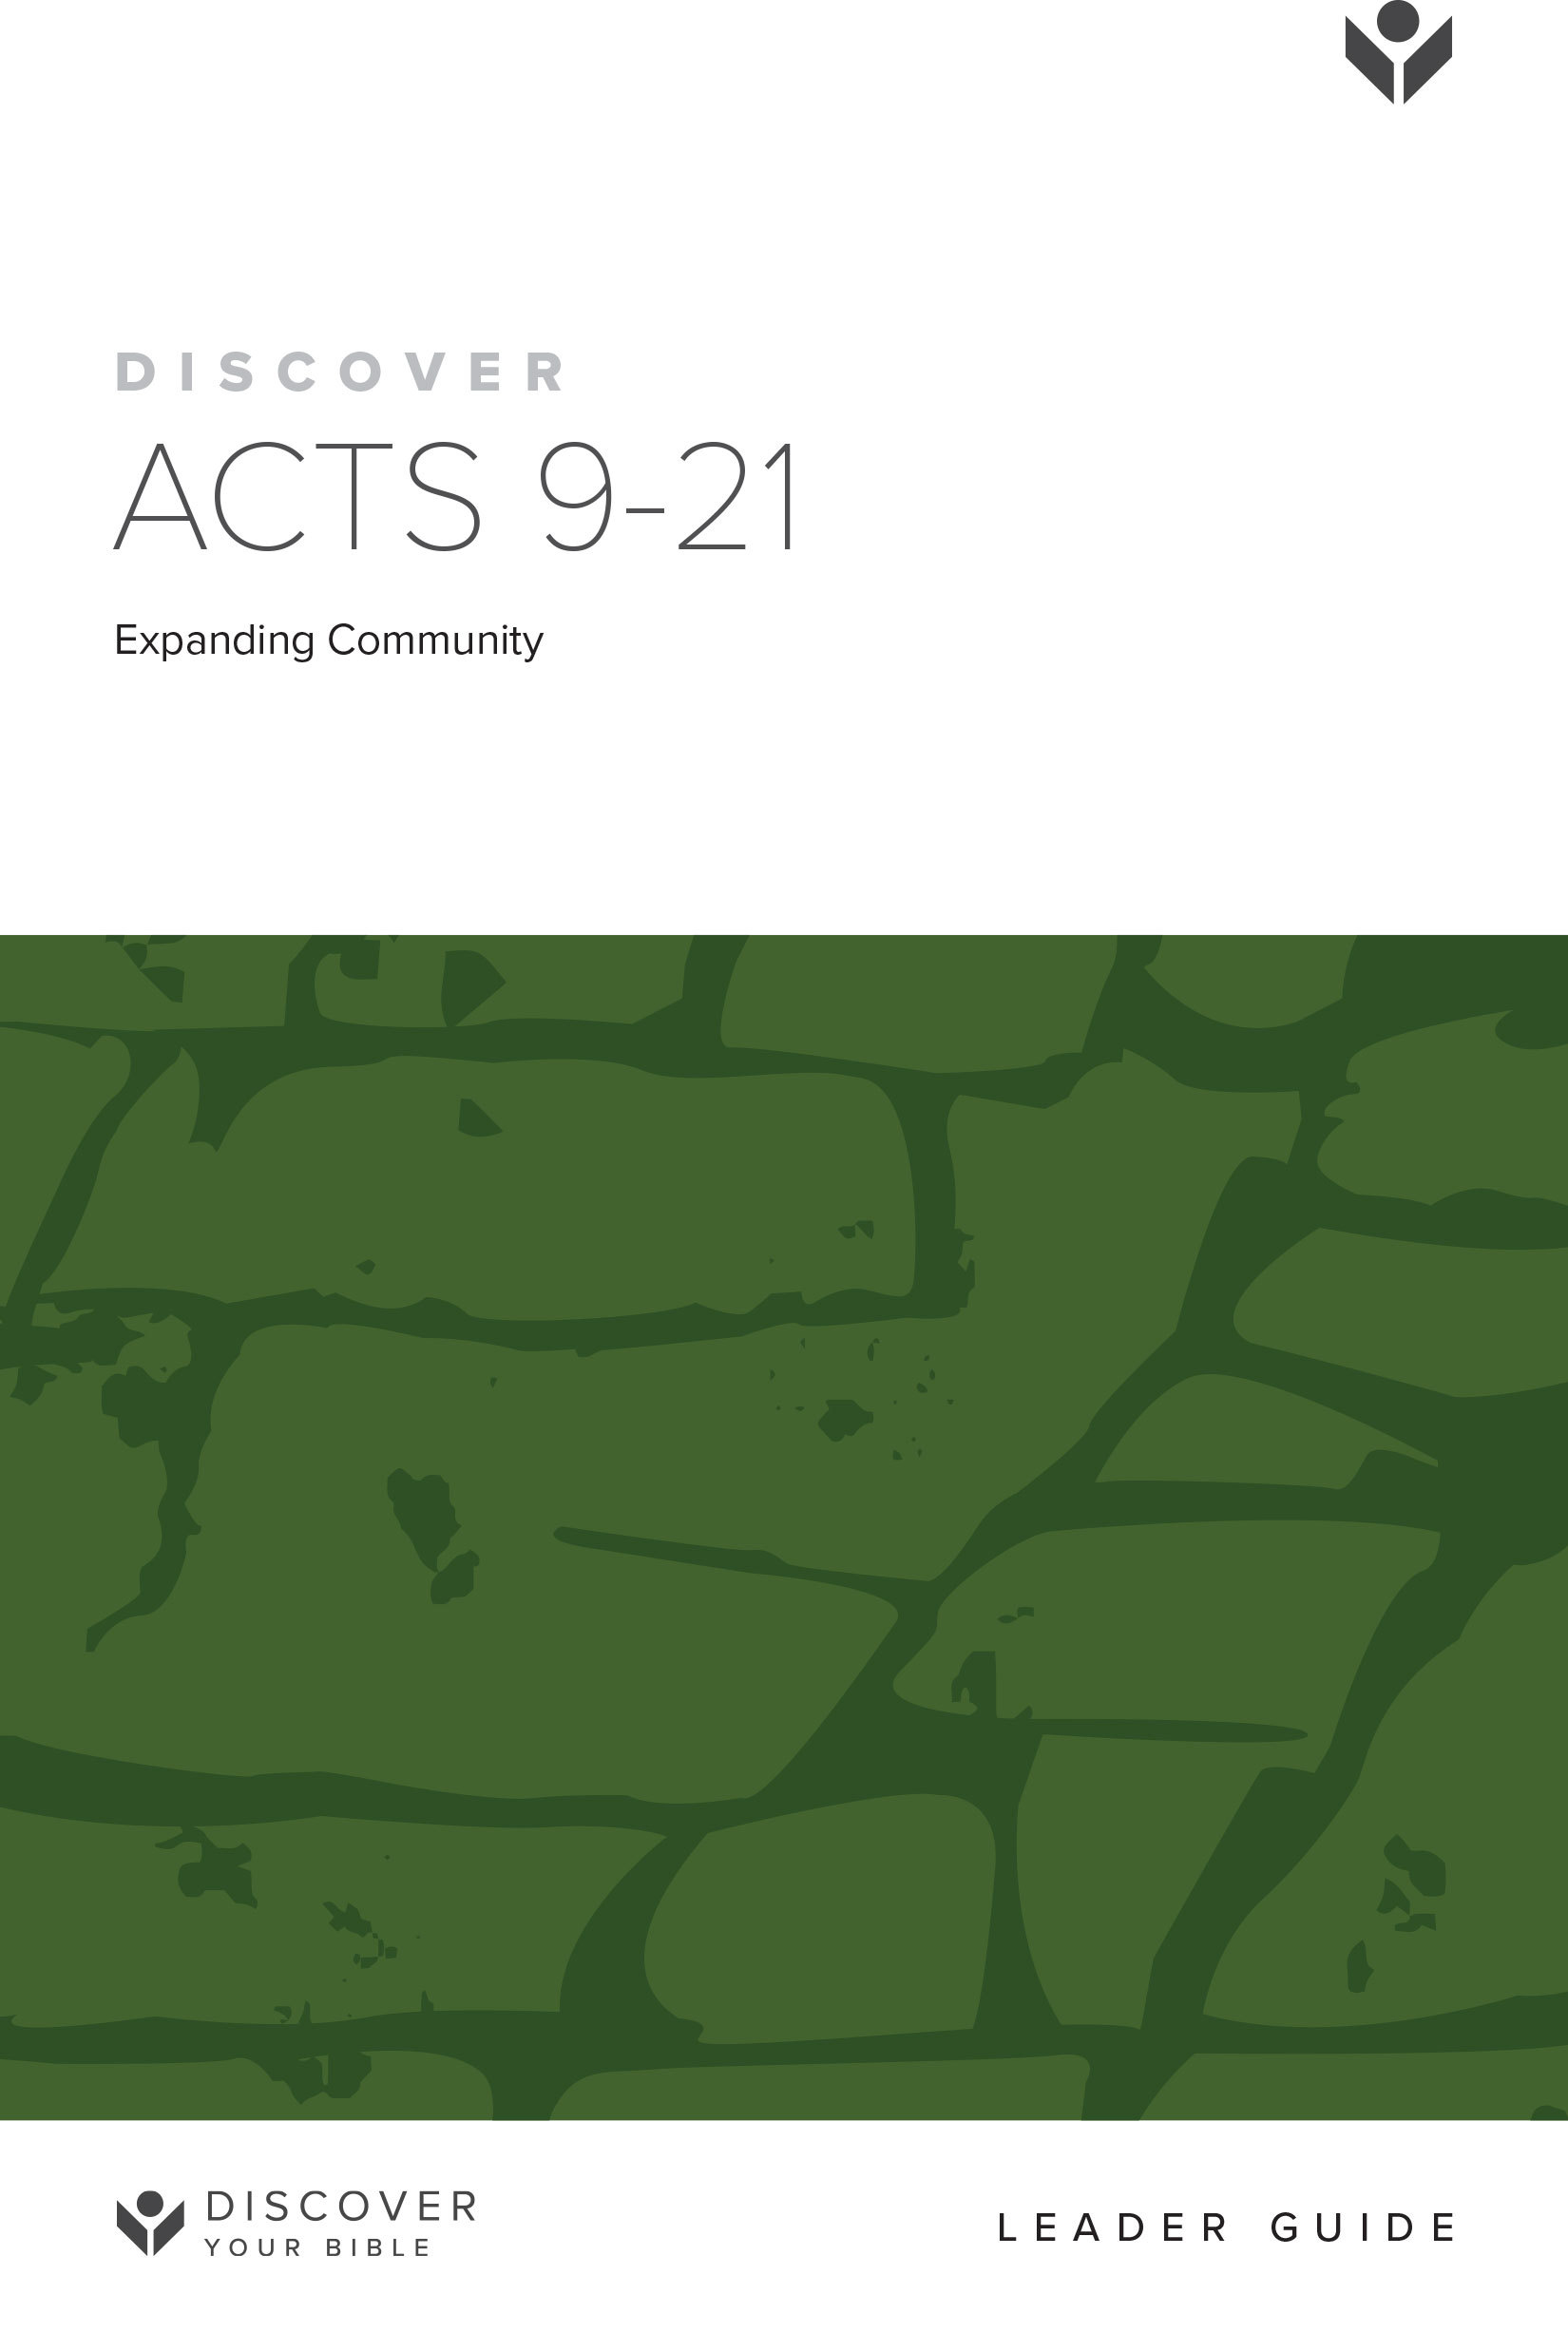 Discover Acts 9-21 Leader Guide cover image